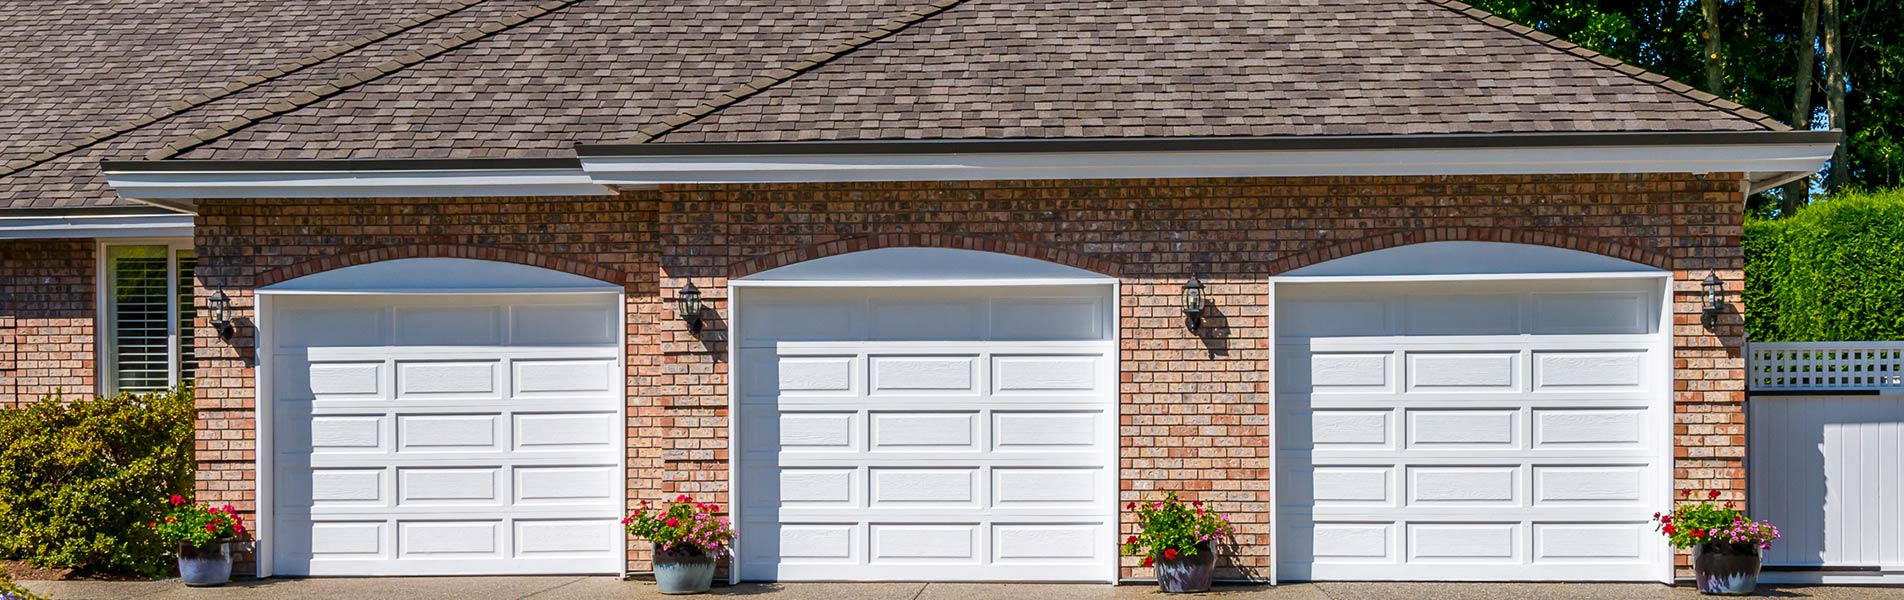 Eagle Garage Door Service Columbus, OH 614-655-1368